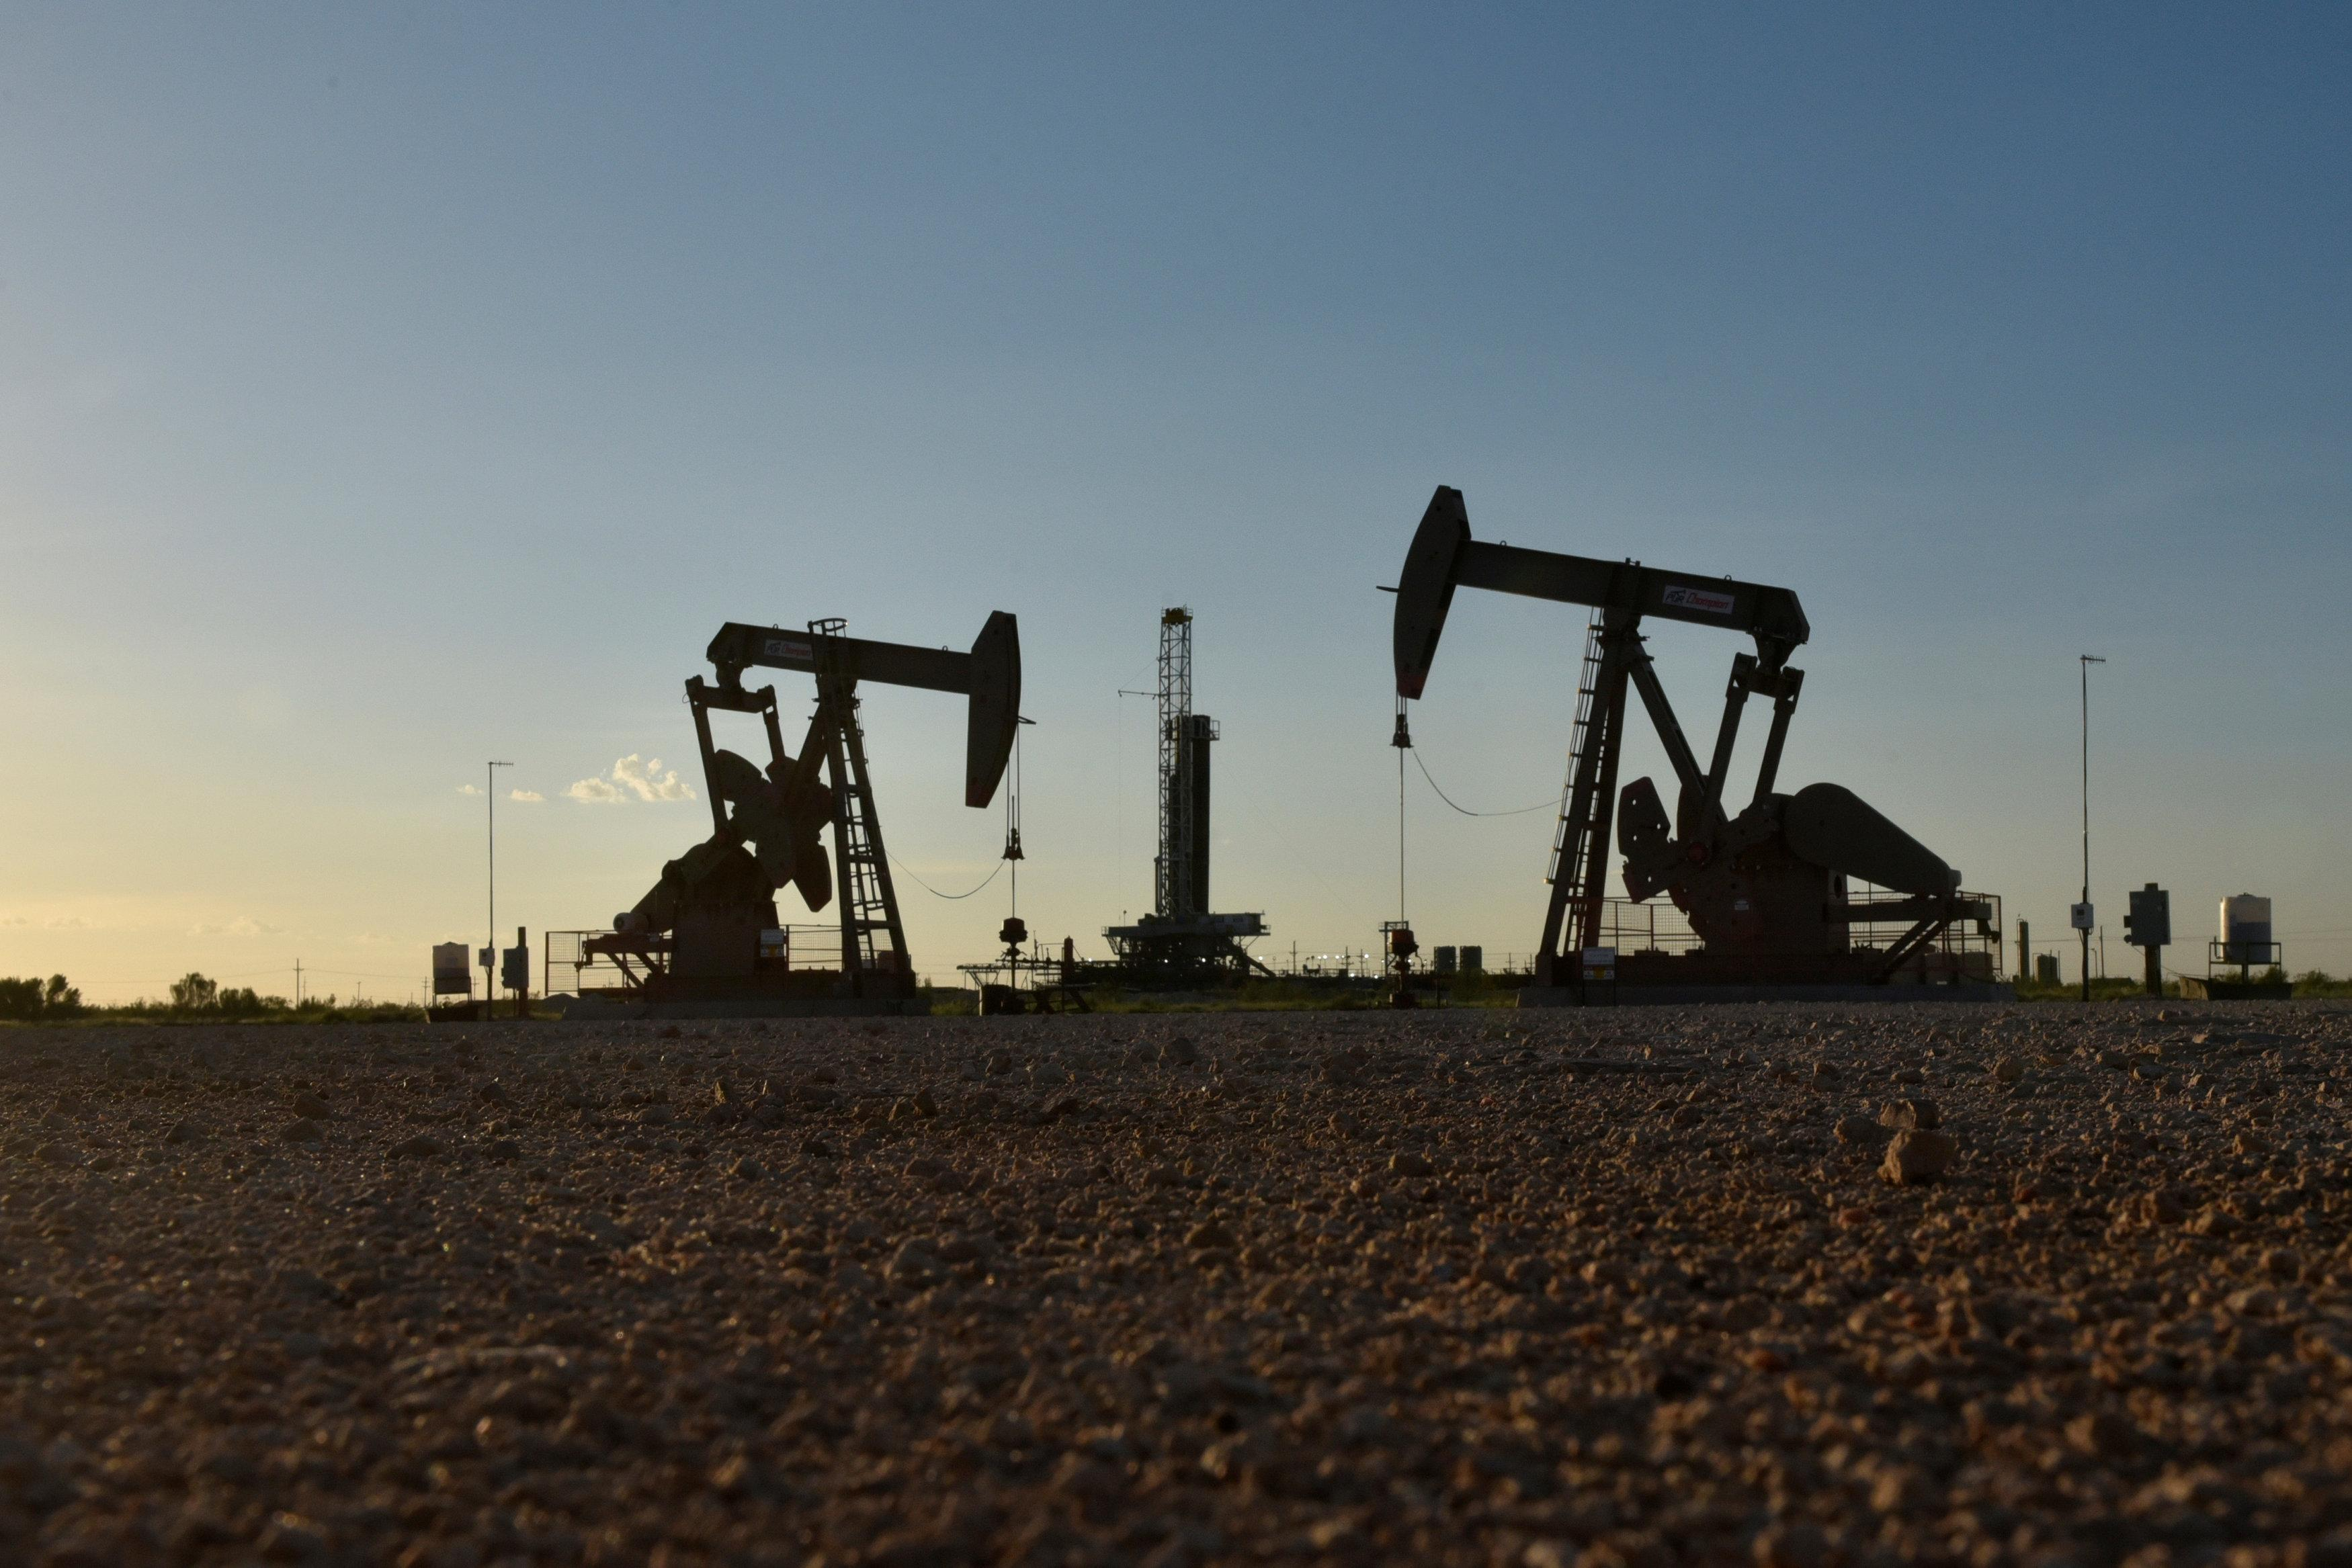 Pump jacks operate in front of a drilling rig in an oil field in Midland, Texas U.S. August 22, 2018. Nick Oxford